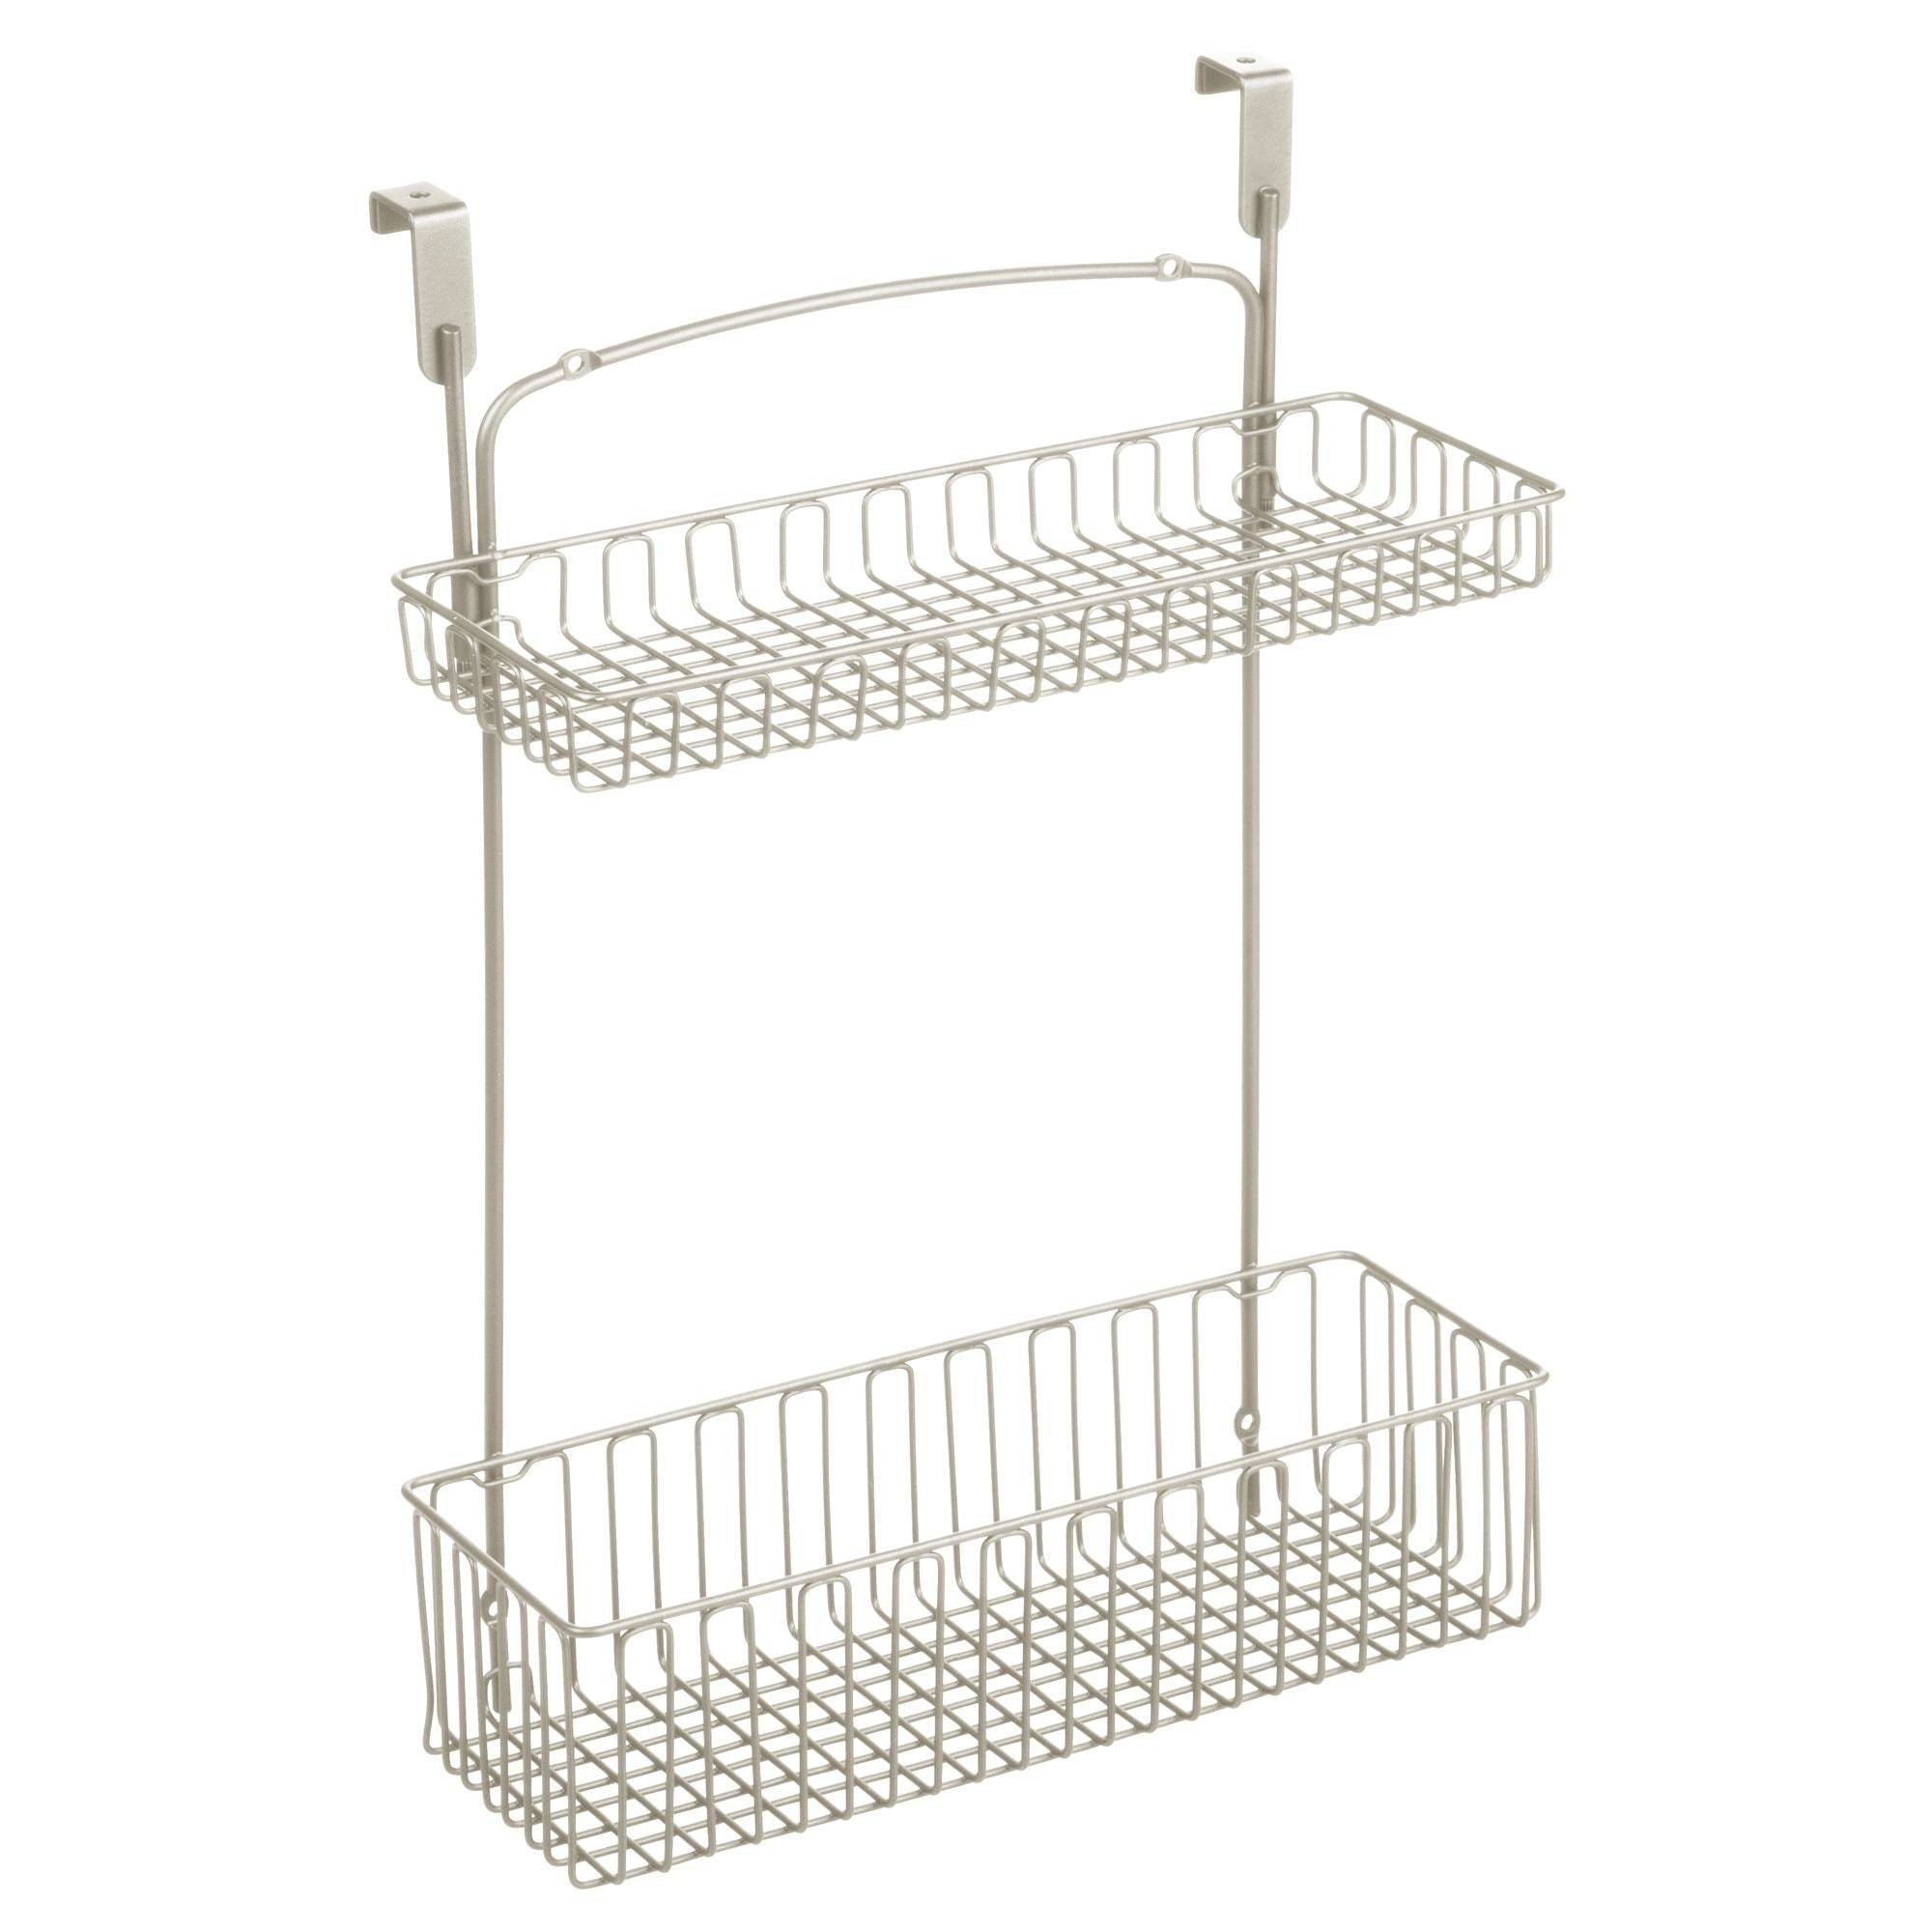 Online shopping mdesign metal farmhouse over cabinet kitchen storage organizer holder or basket hang over cabinet doors in kitchen pantry holds dish soap window cleaner sponges satin